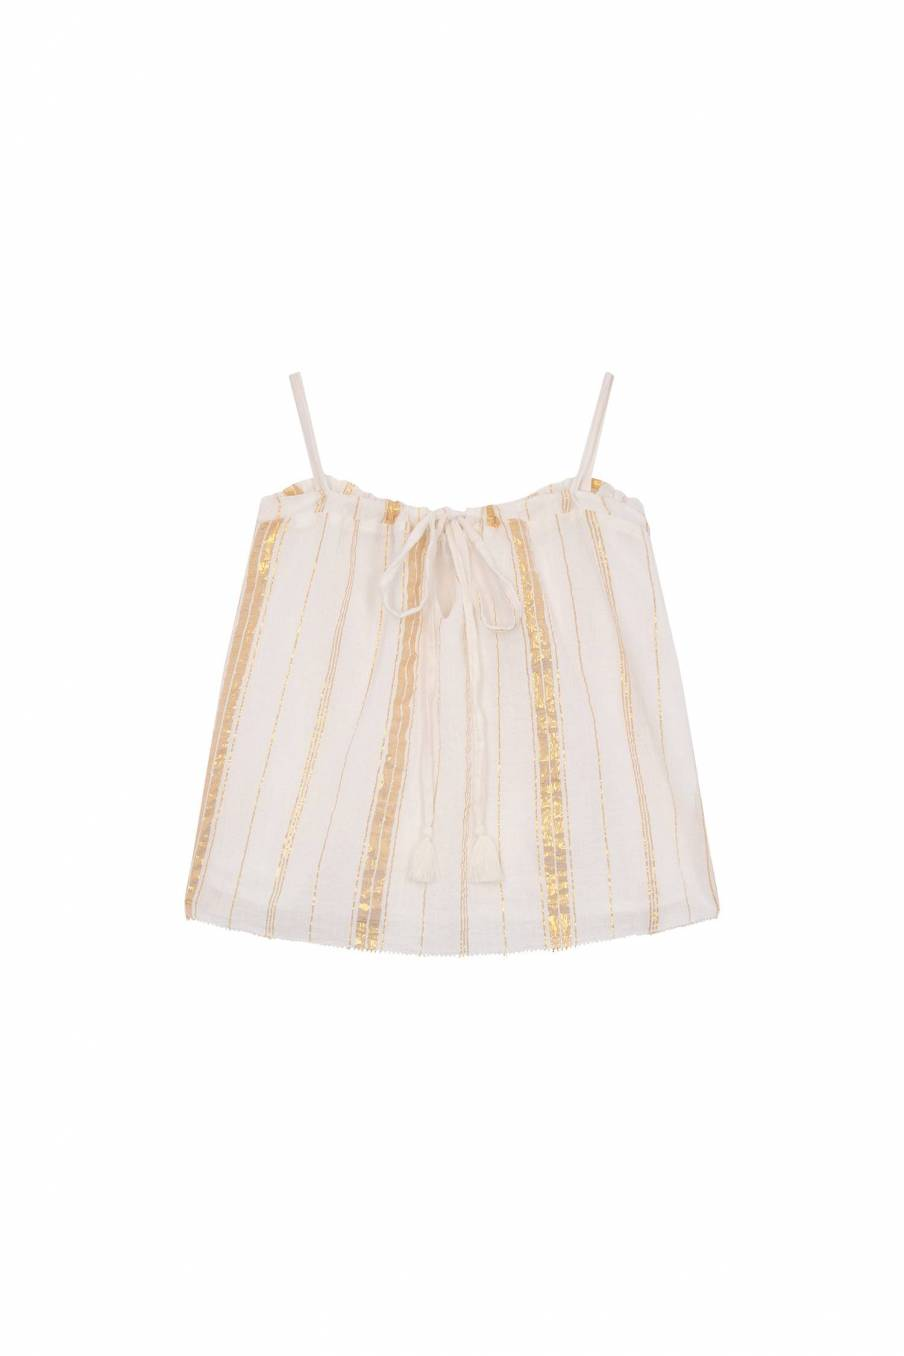 Top Cary White & Gold Stripes